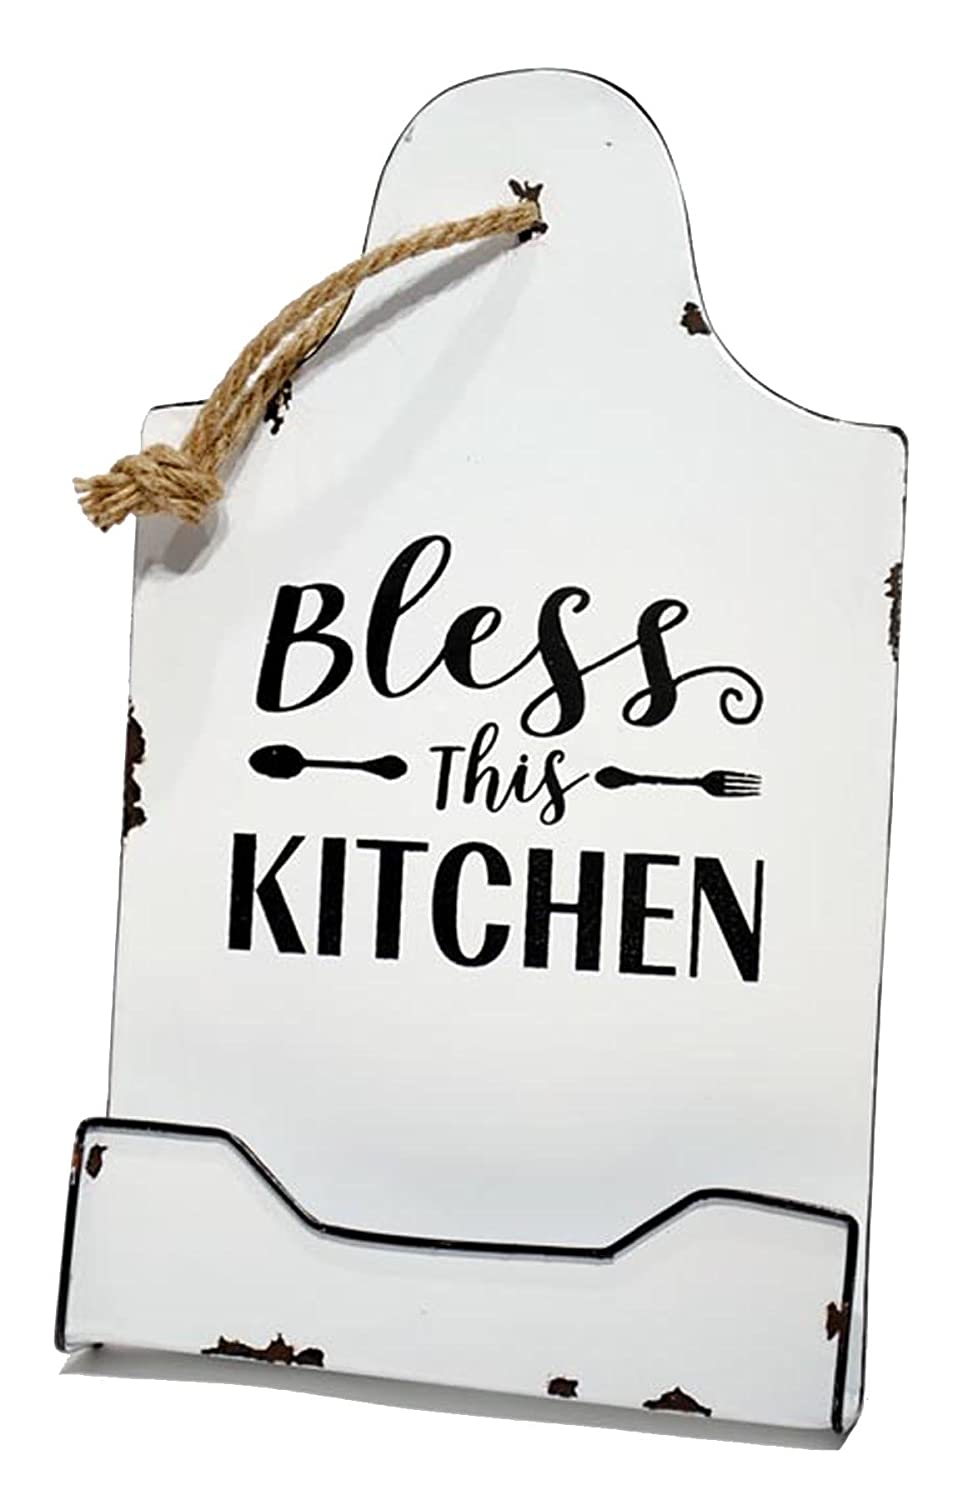 Young's White & Black Enamelware Cookbook Holder - Bless this Kitchen Youngs